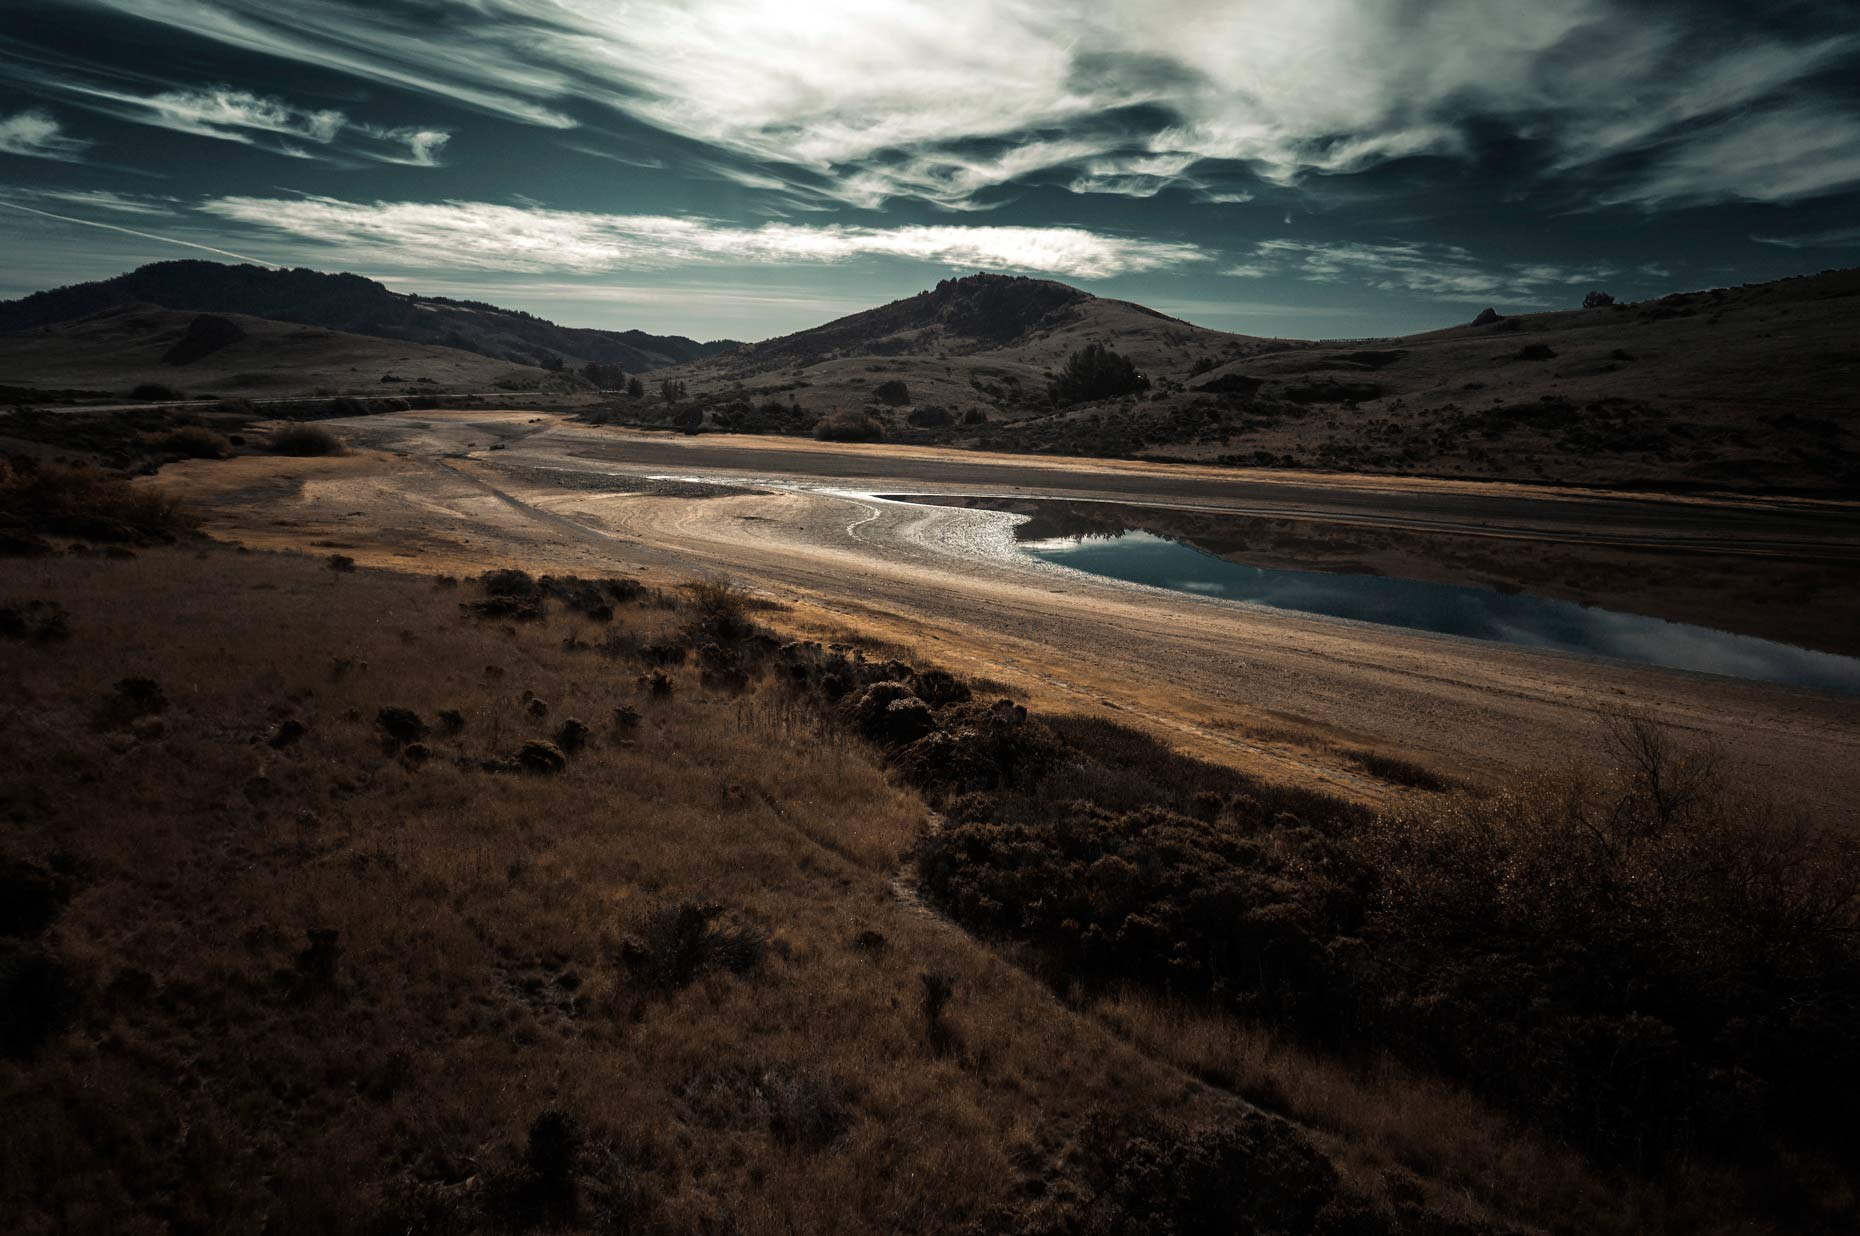 Marin County aerial drone photography by Jason Tinacci Photography